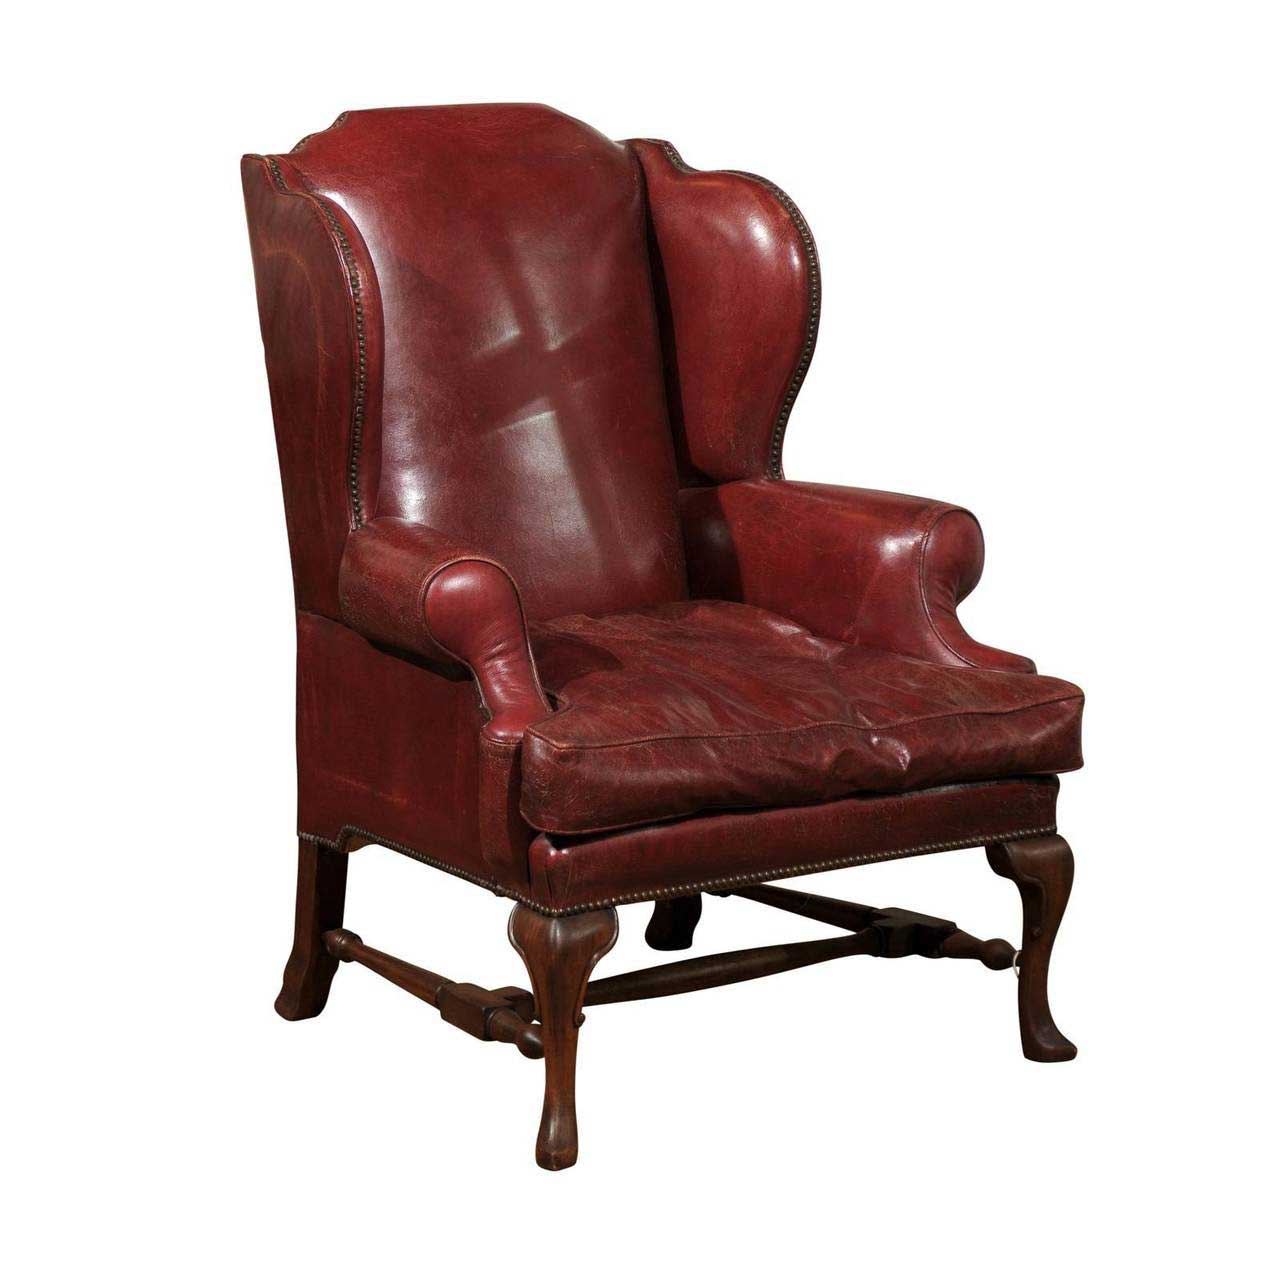 red leather wingback chair pedicure chairs package deals late 19th century english foxglove